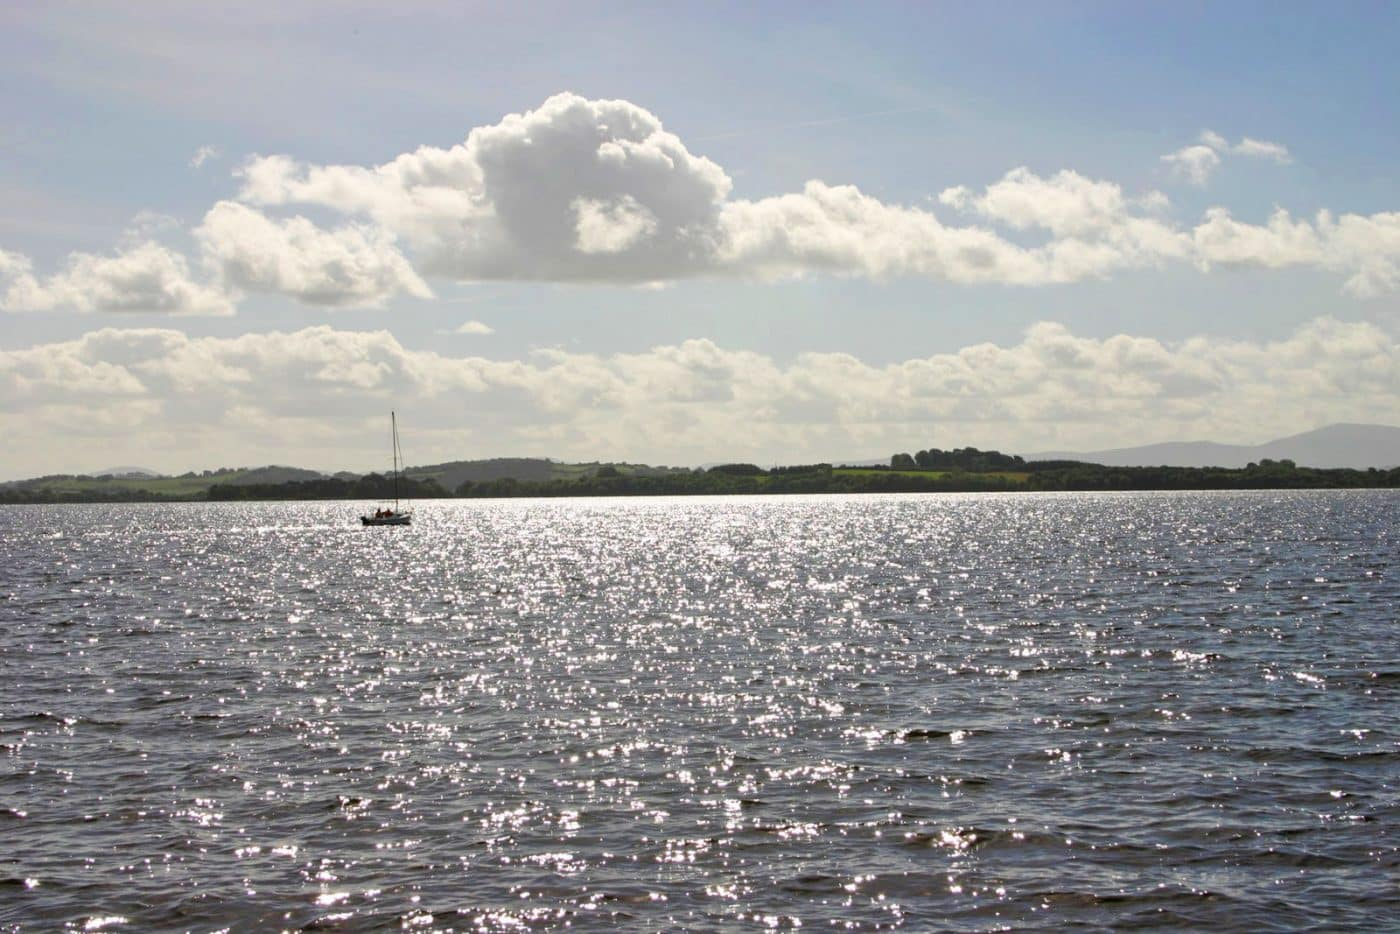 Ireland's mystical lake scenery - houseboat tour on Lough Derg